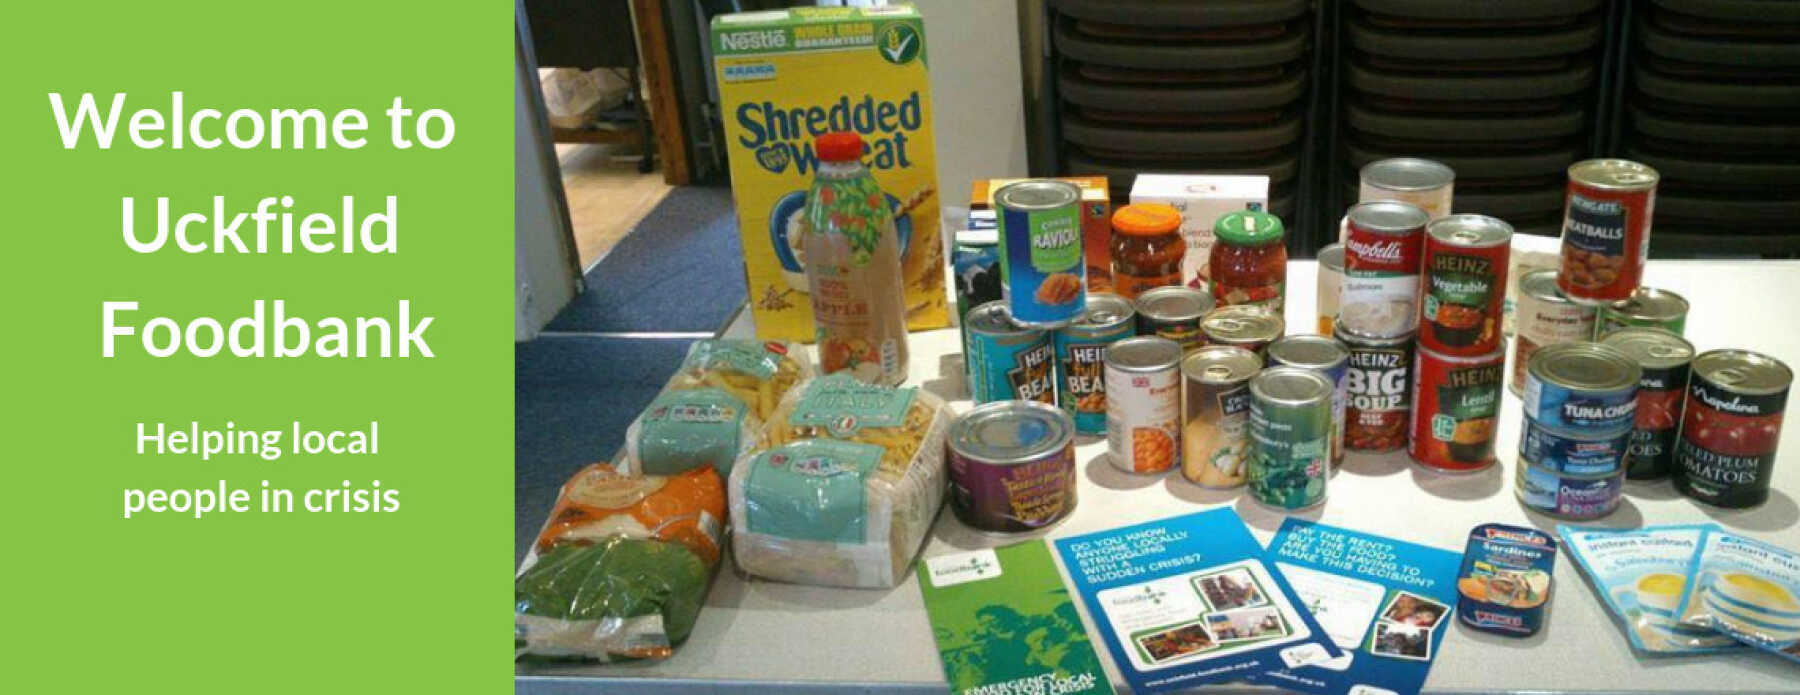 Featured Image for Uckfield Foodbank